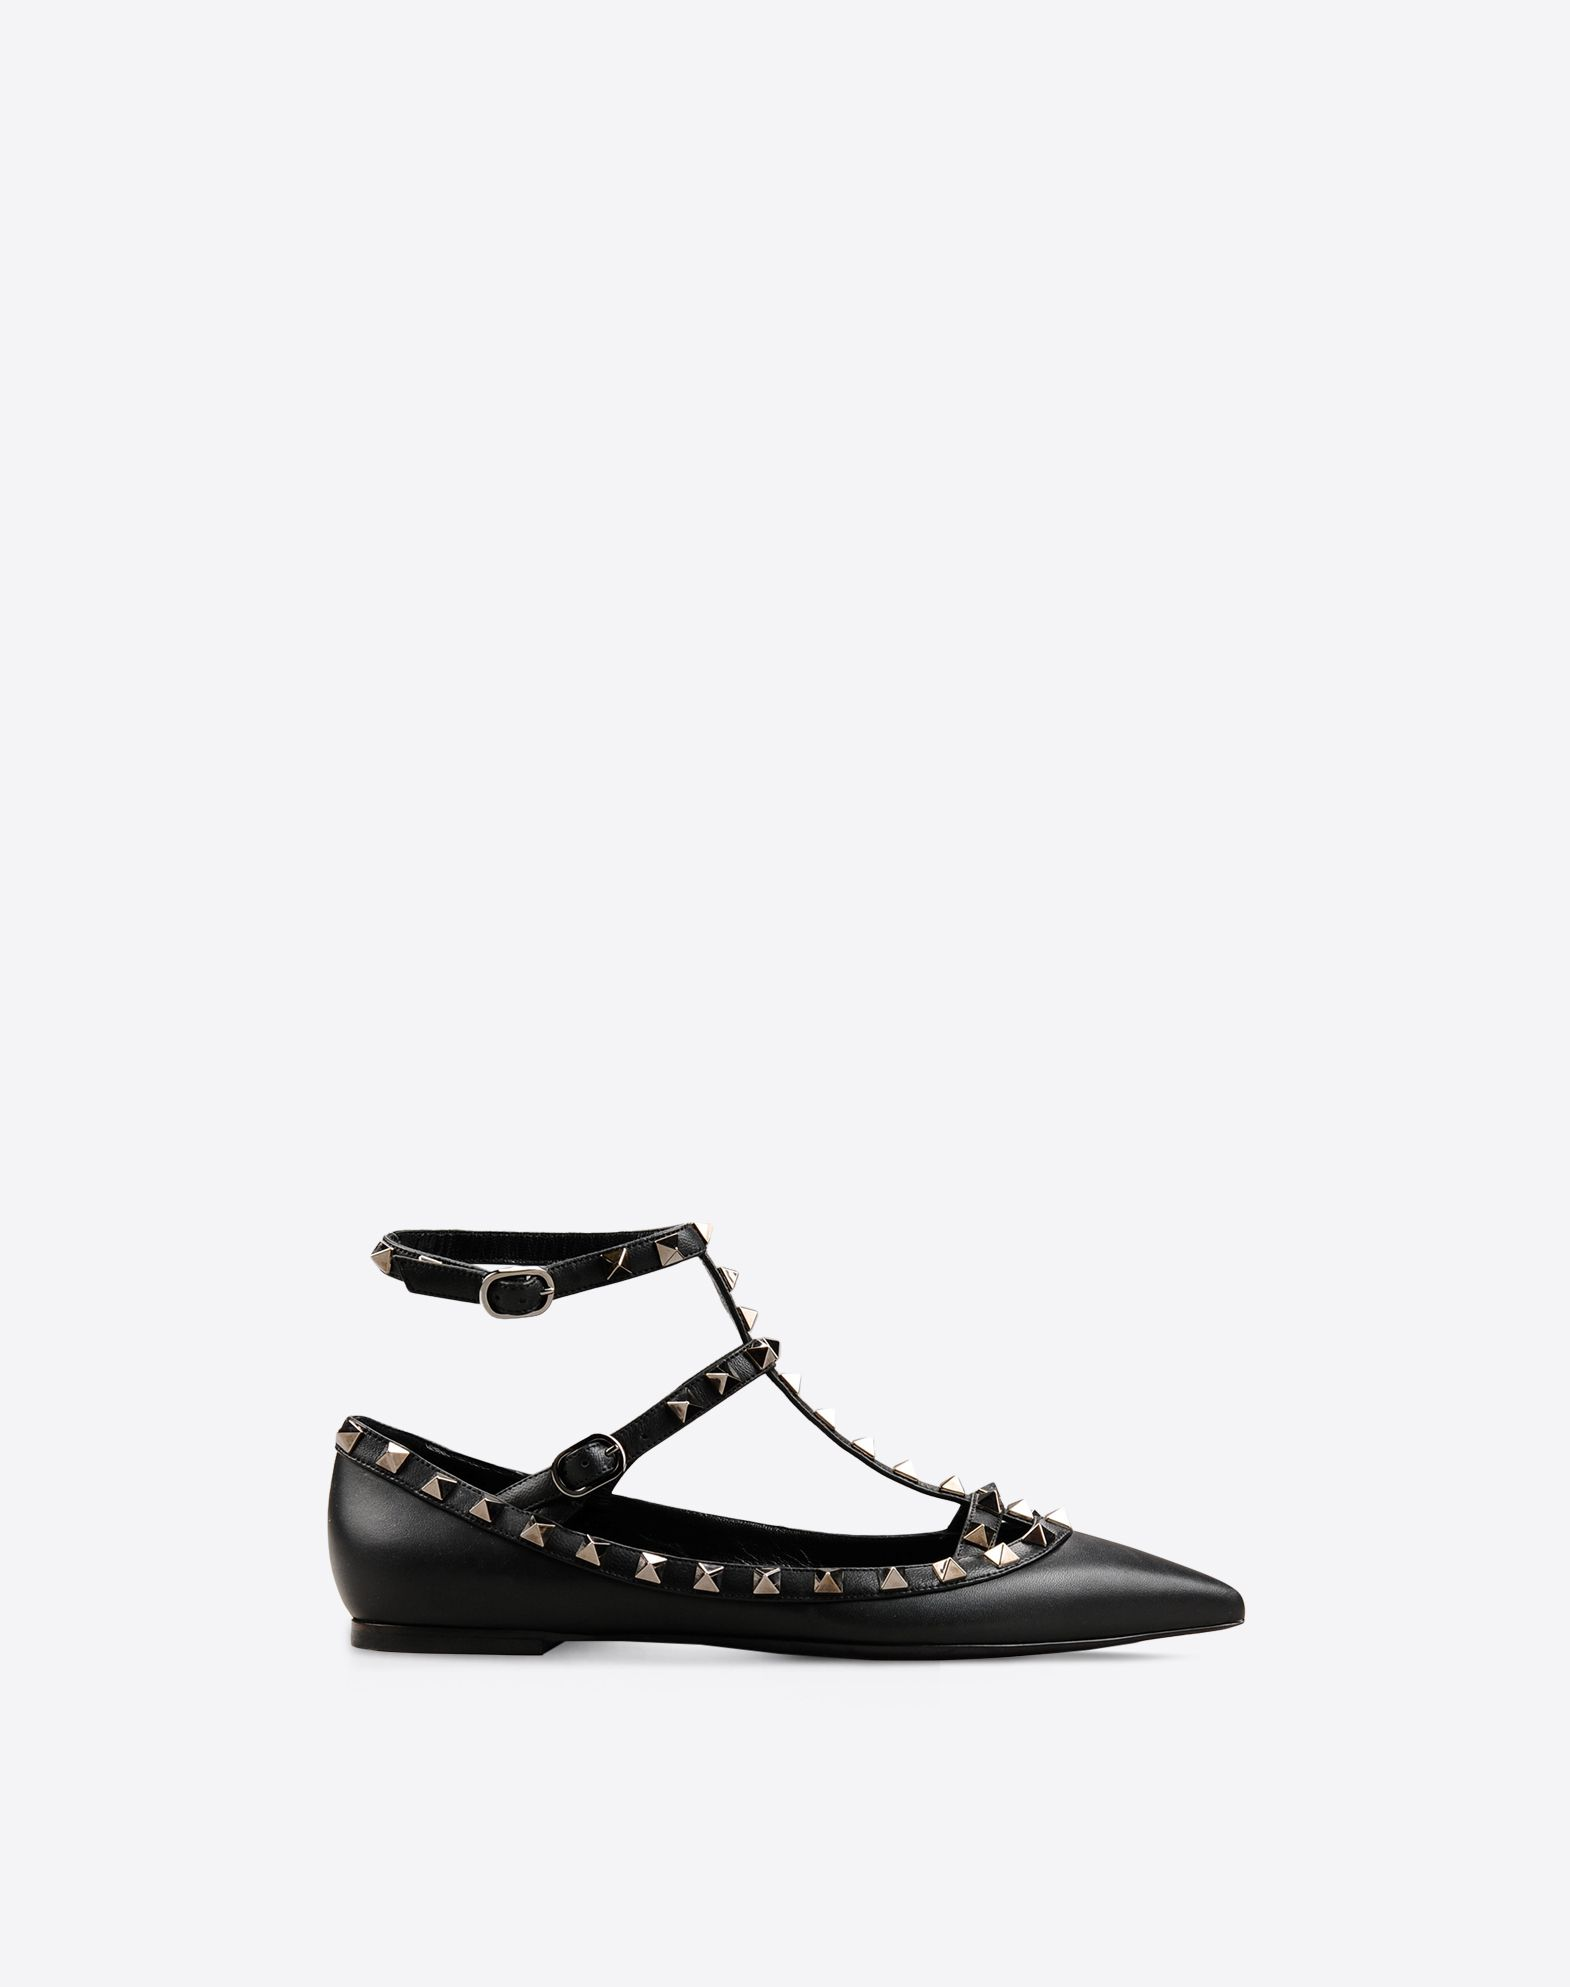 VALENTINO Studs Solid color Buckling ankle strap closure Leather sole Narrow toeline  44910399of